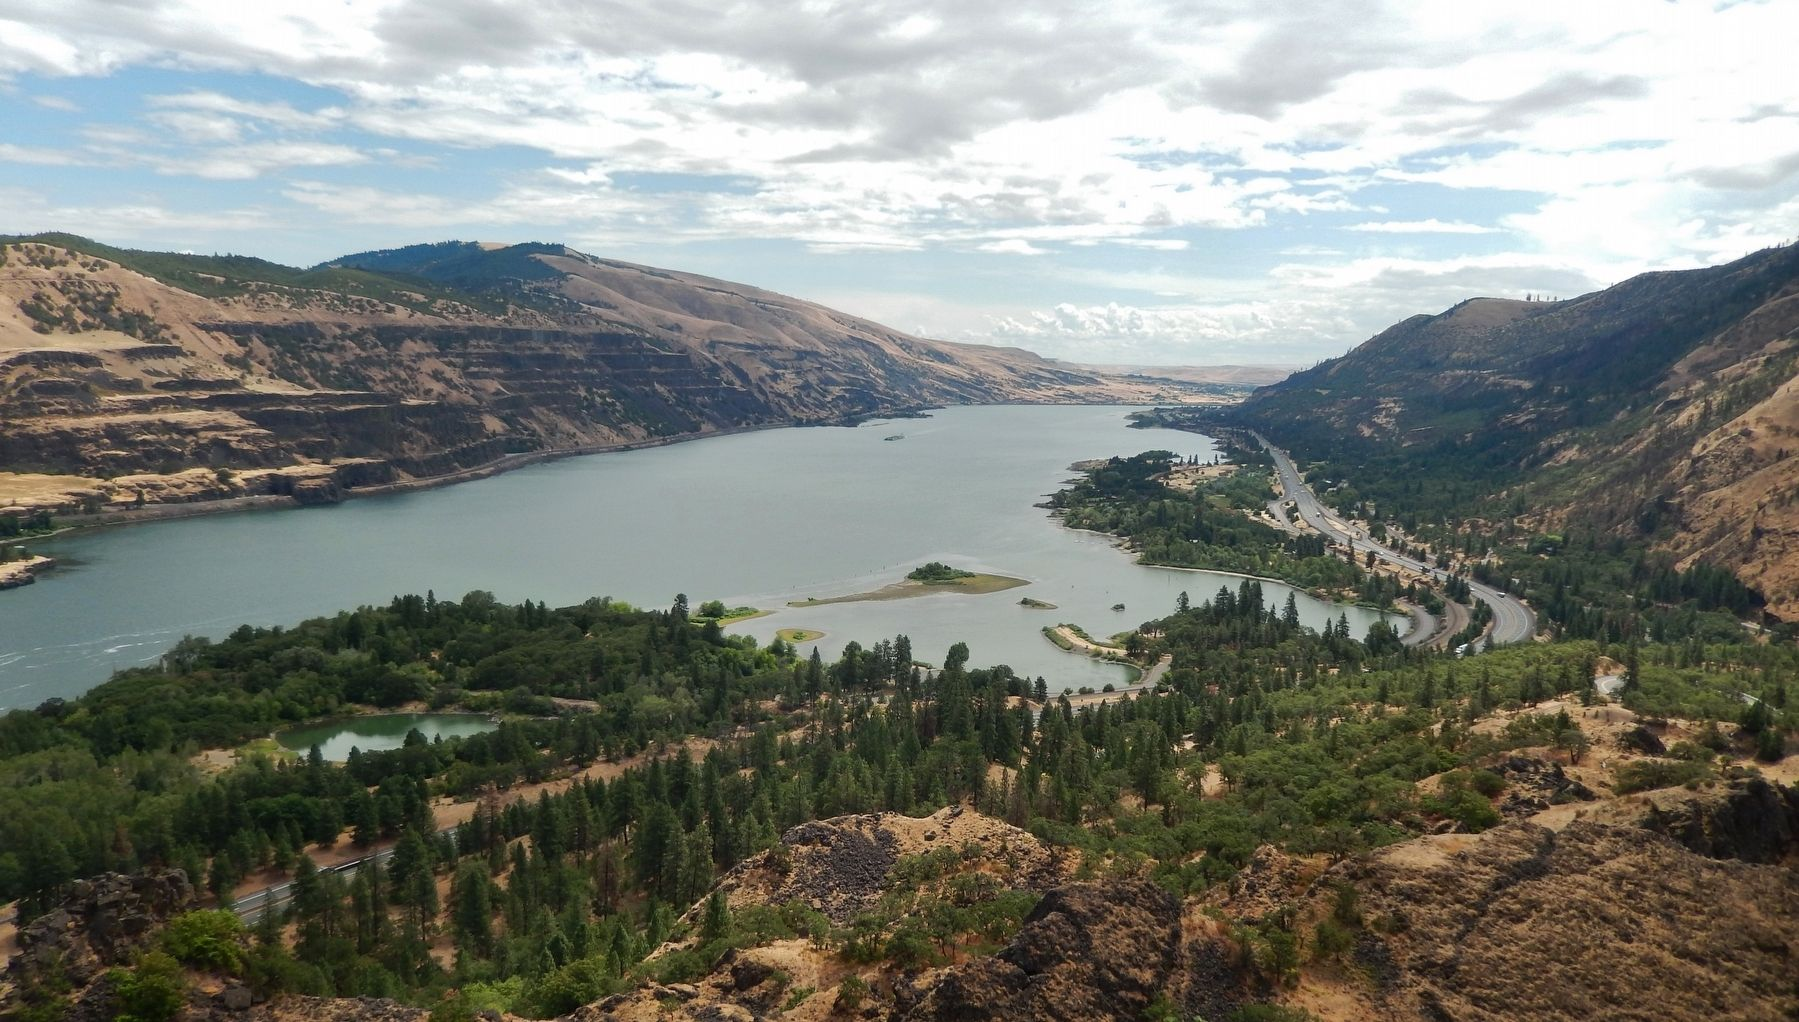 Columbia River Gorge (<i>view east from marker</i>) image. Click for full size.